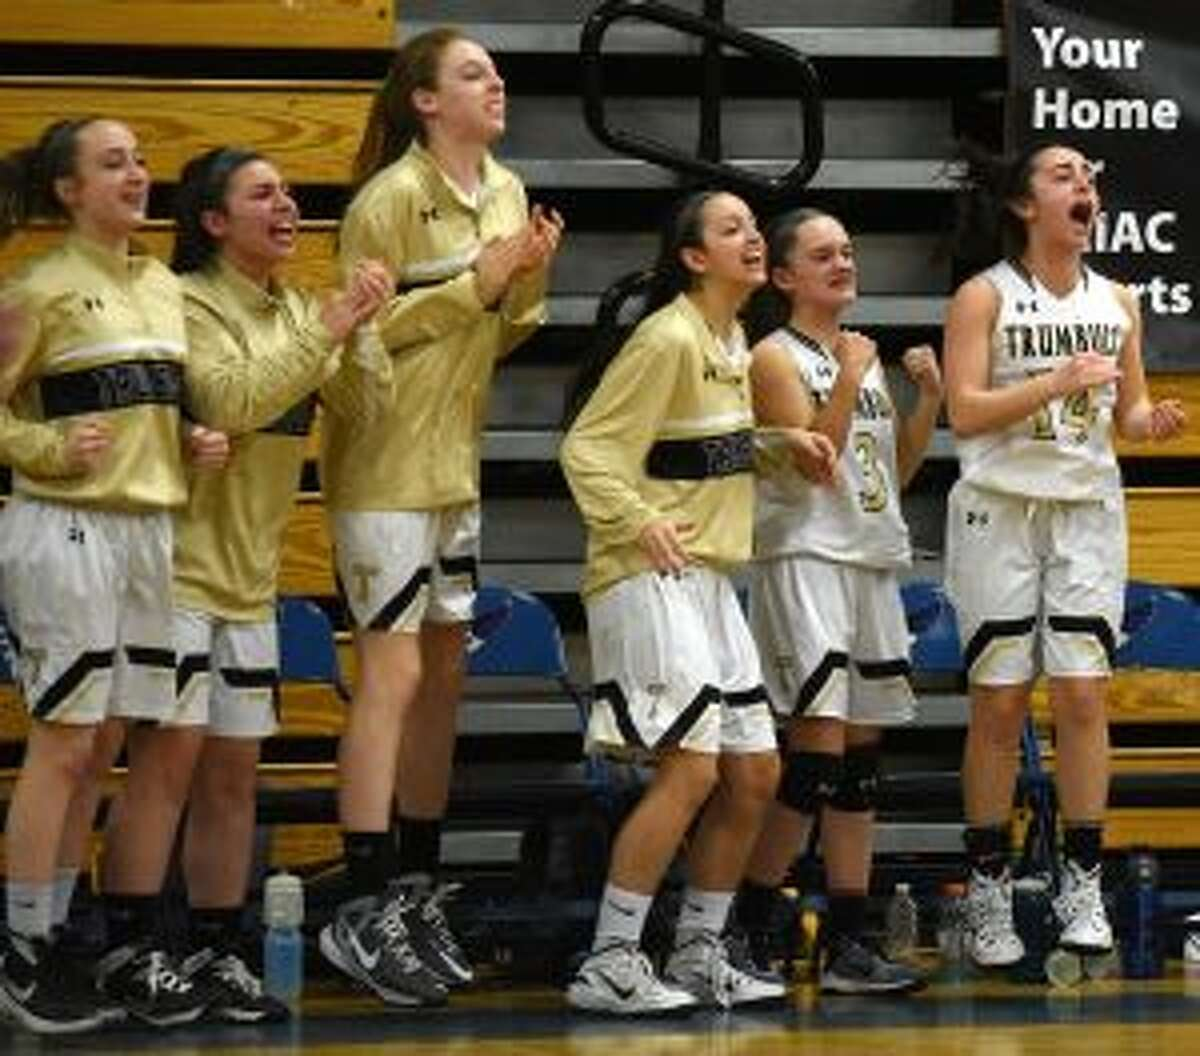 The Trumbull reserves react.